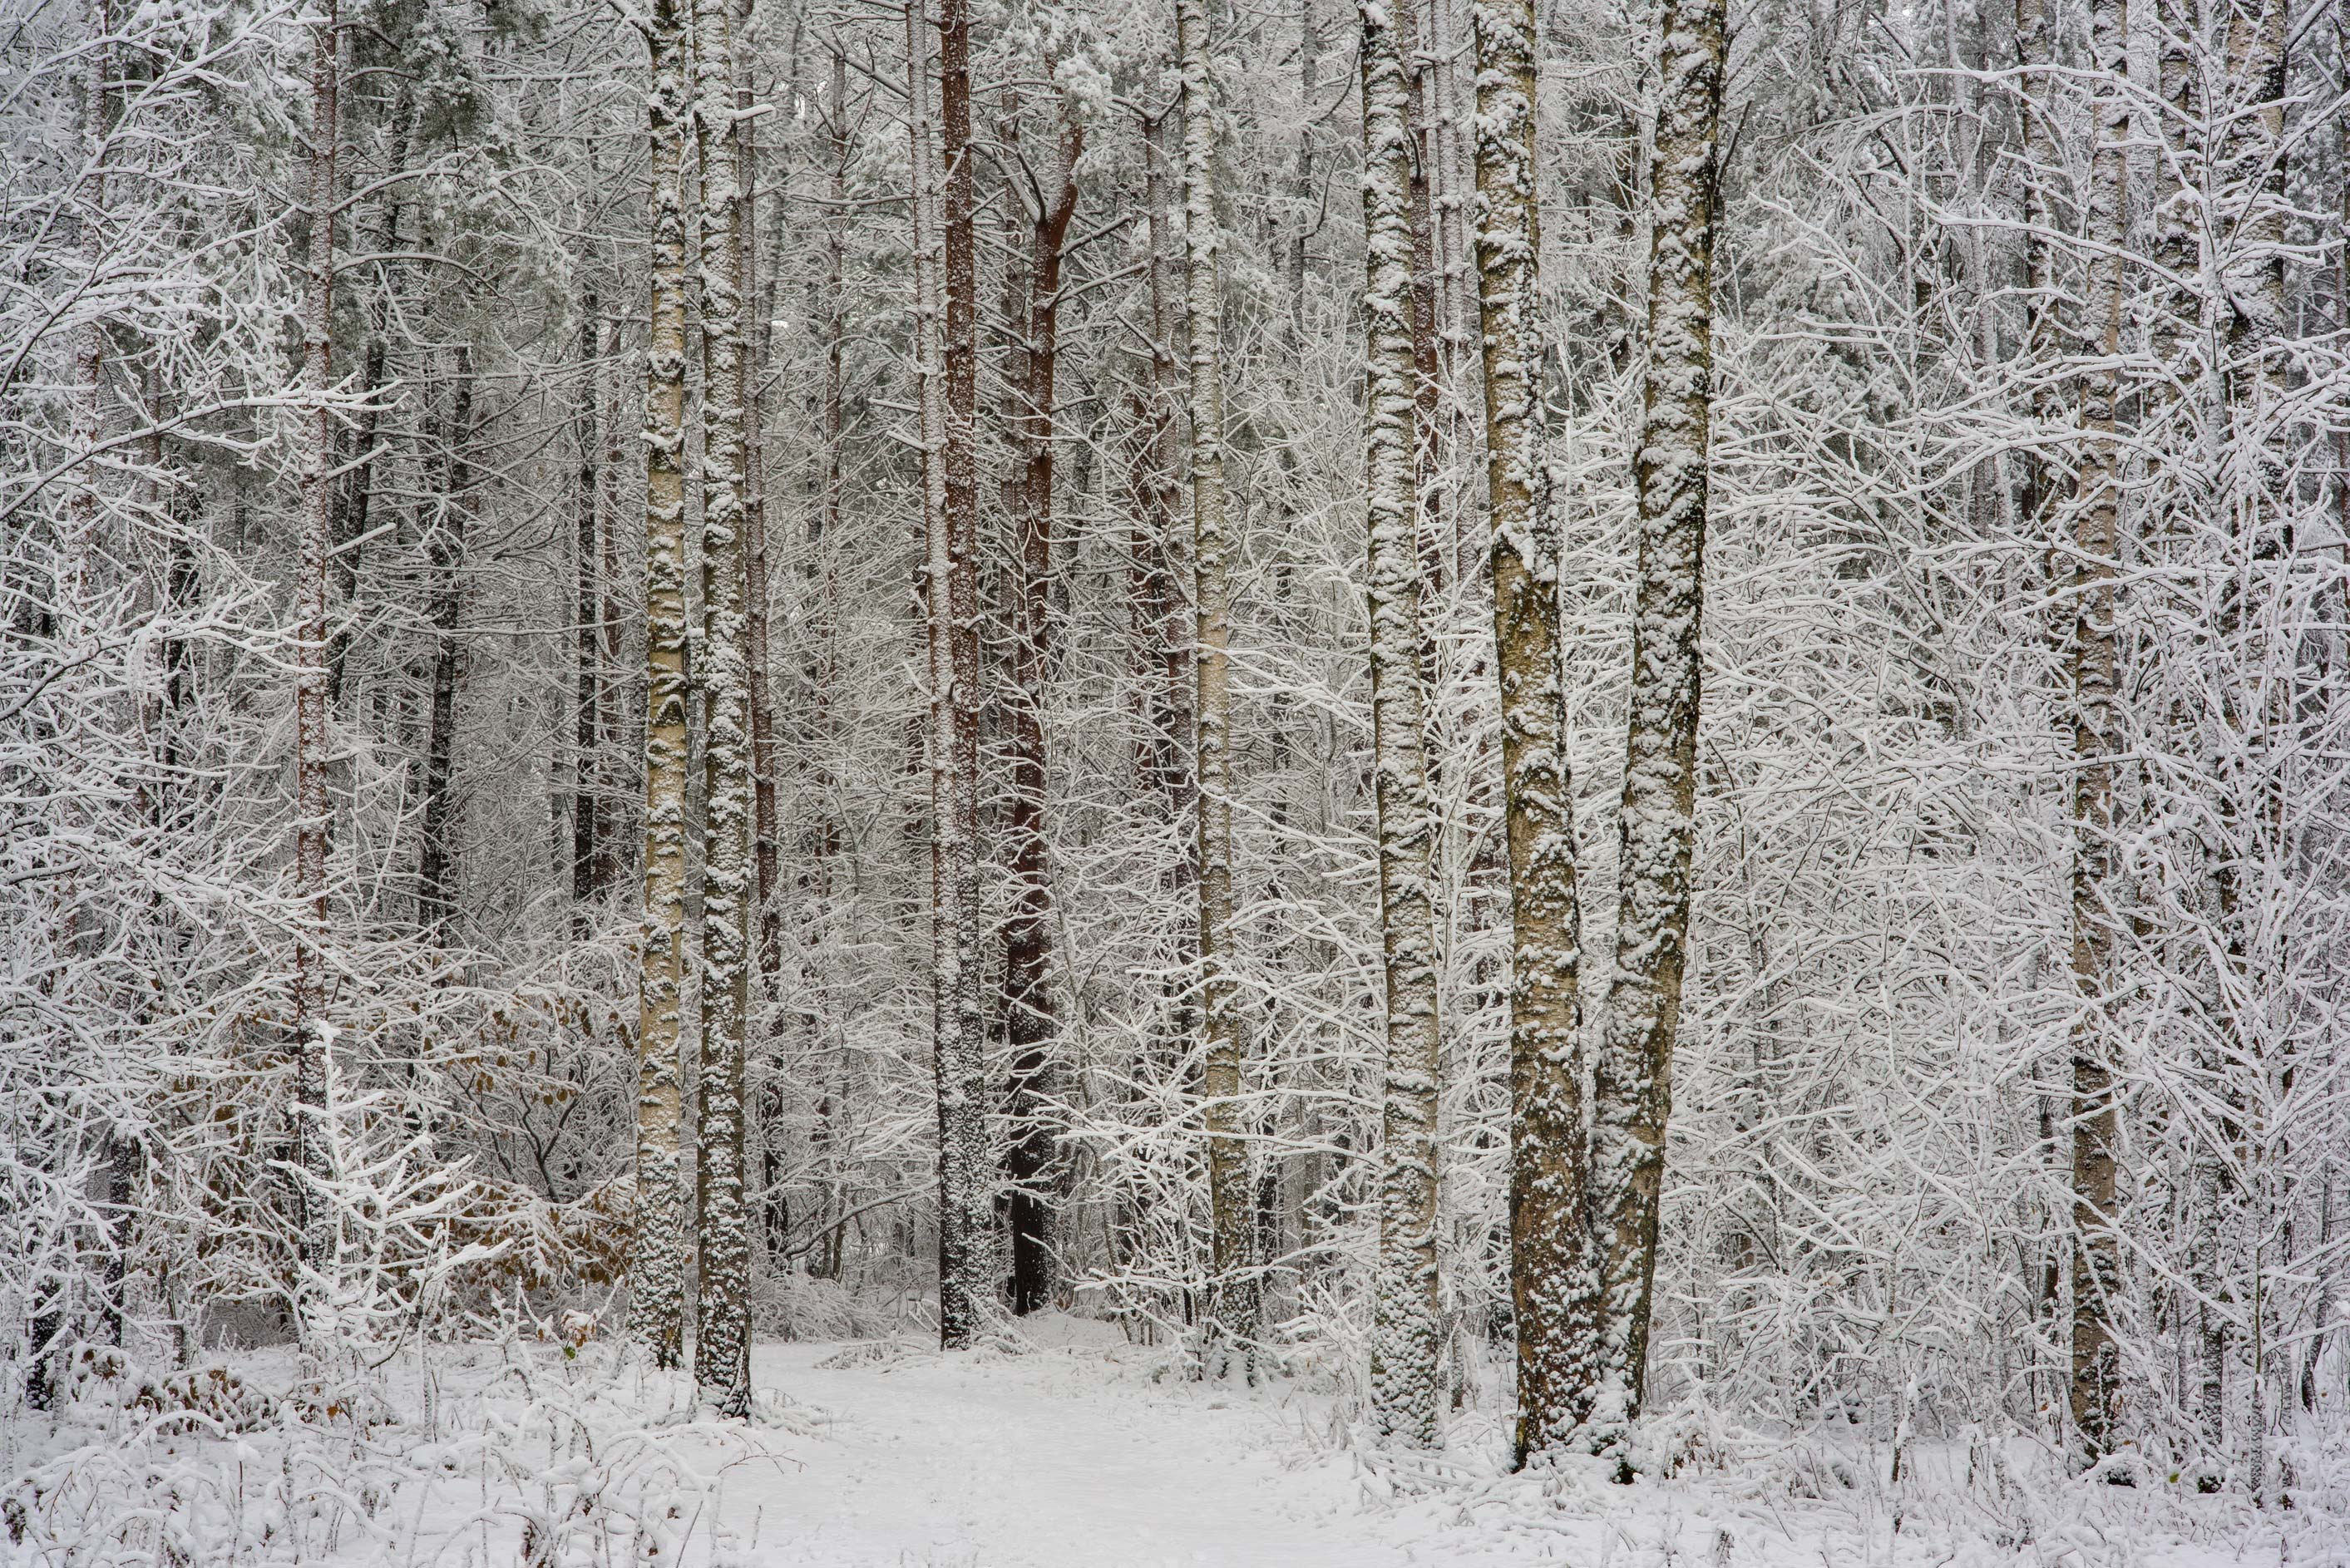 Snowy birch trees in Sosnovka Park. St.Petersburg, Russia